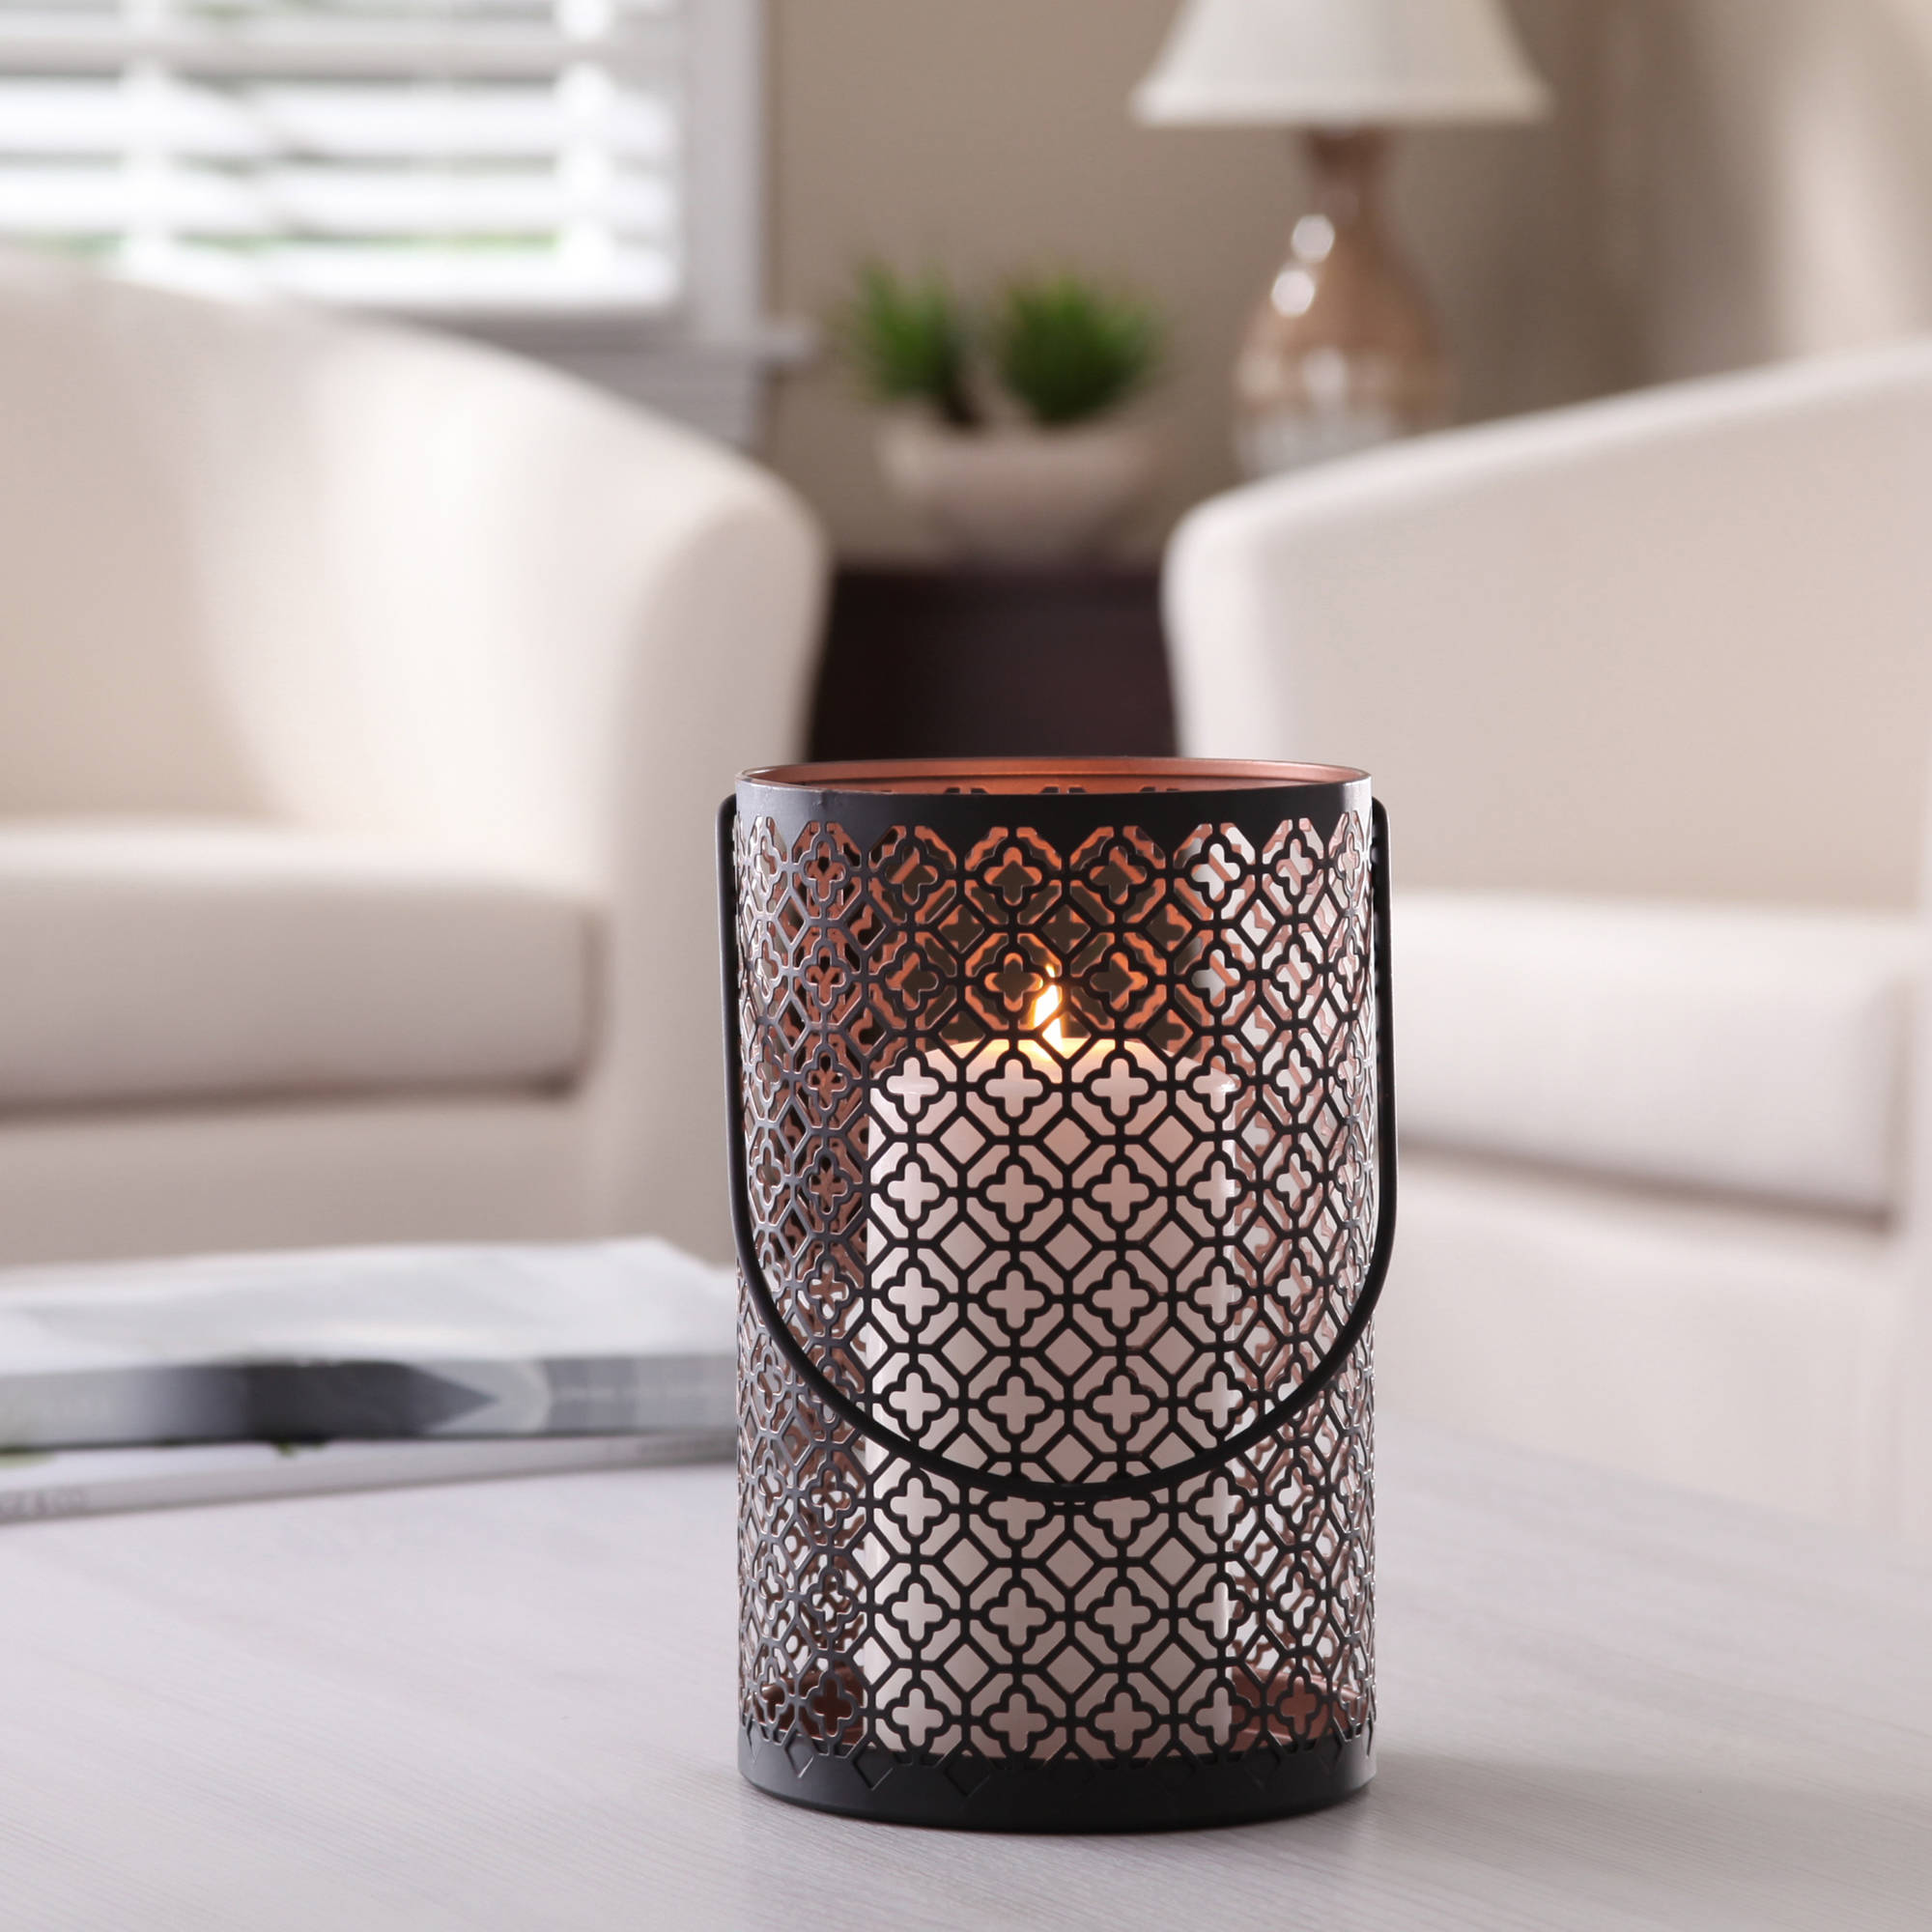 Better Homes and Gardens Quatrefoil Lantern, Two-tone Black and Bronze